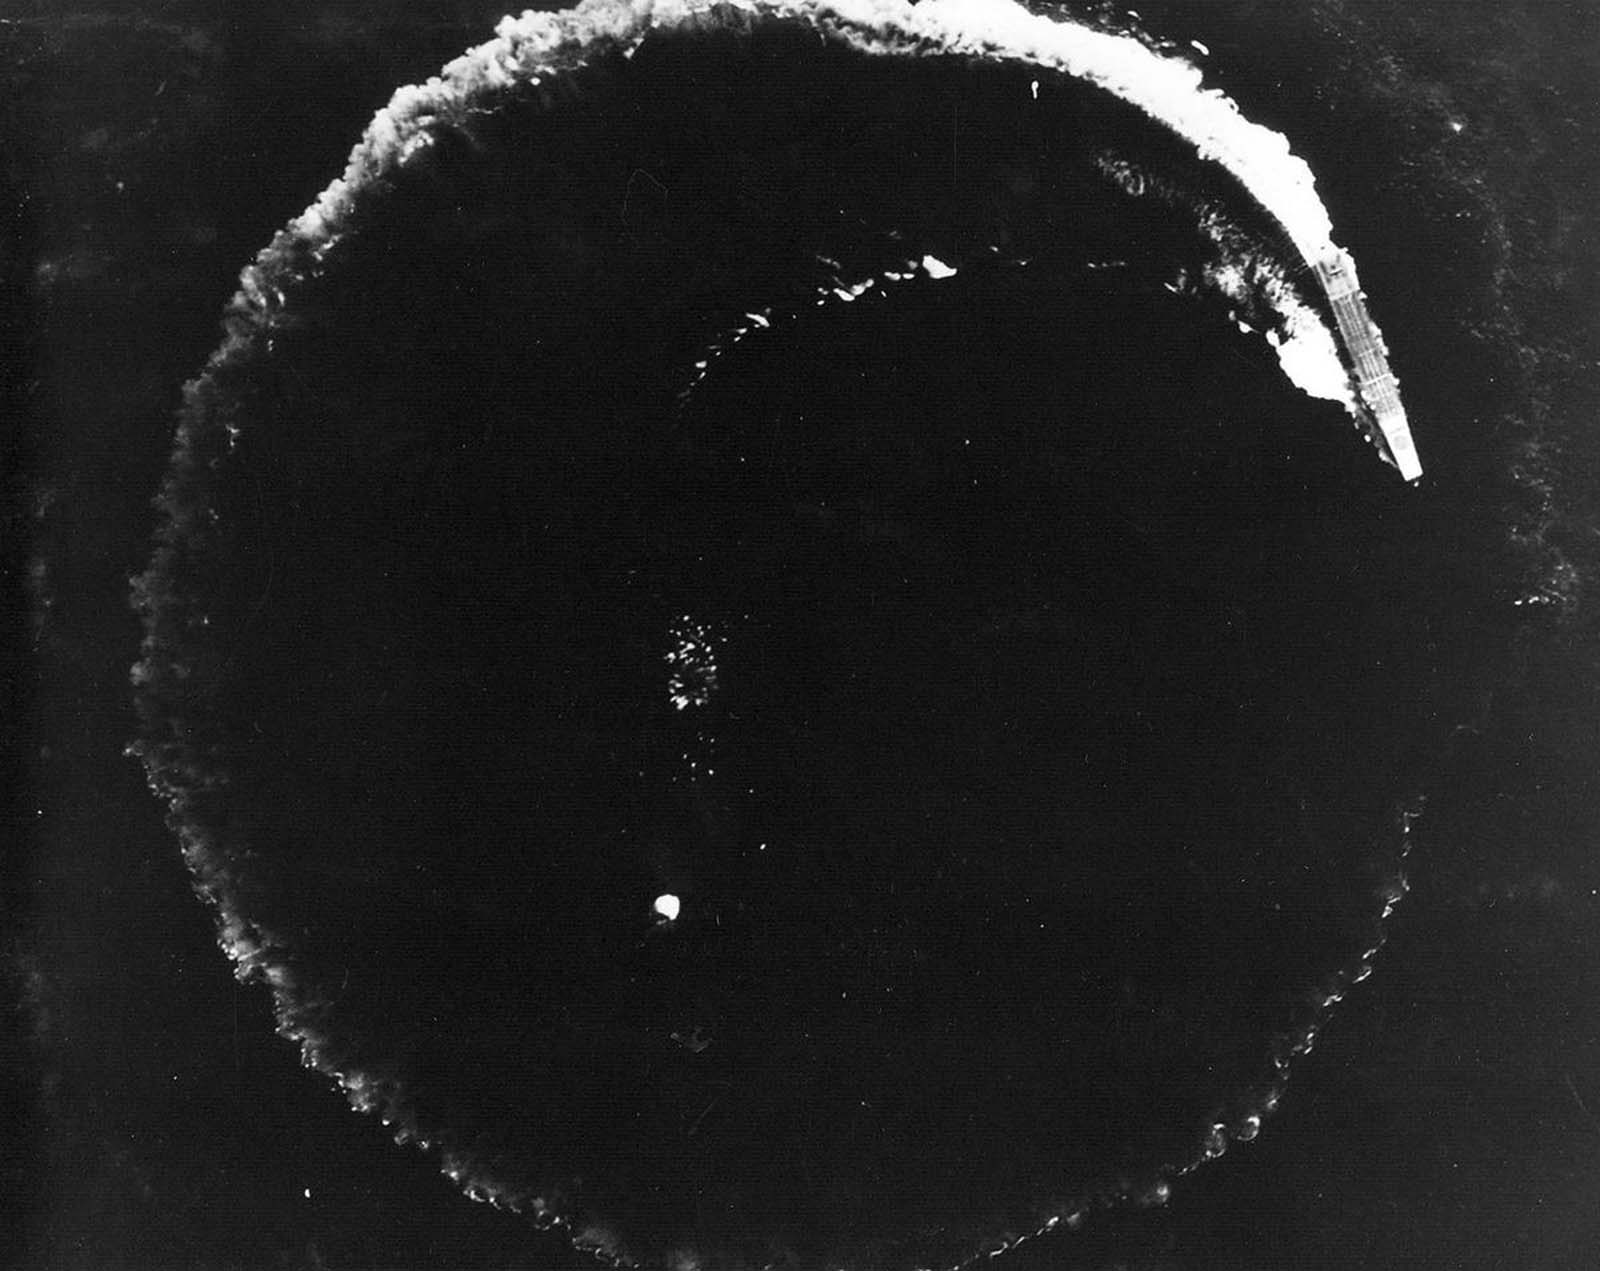 The Japanese aircraft carrier Soryu maneuvers to avoid bombs dropped by Army Air Forces B-17 Flying Fortresses during the Battle of Midway, on June 4, 1942.